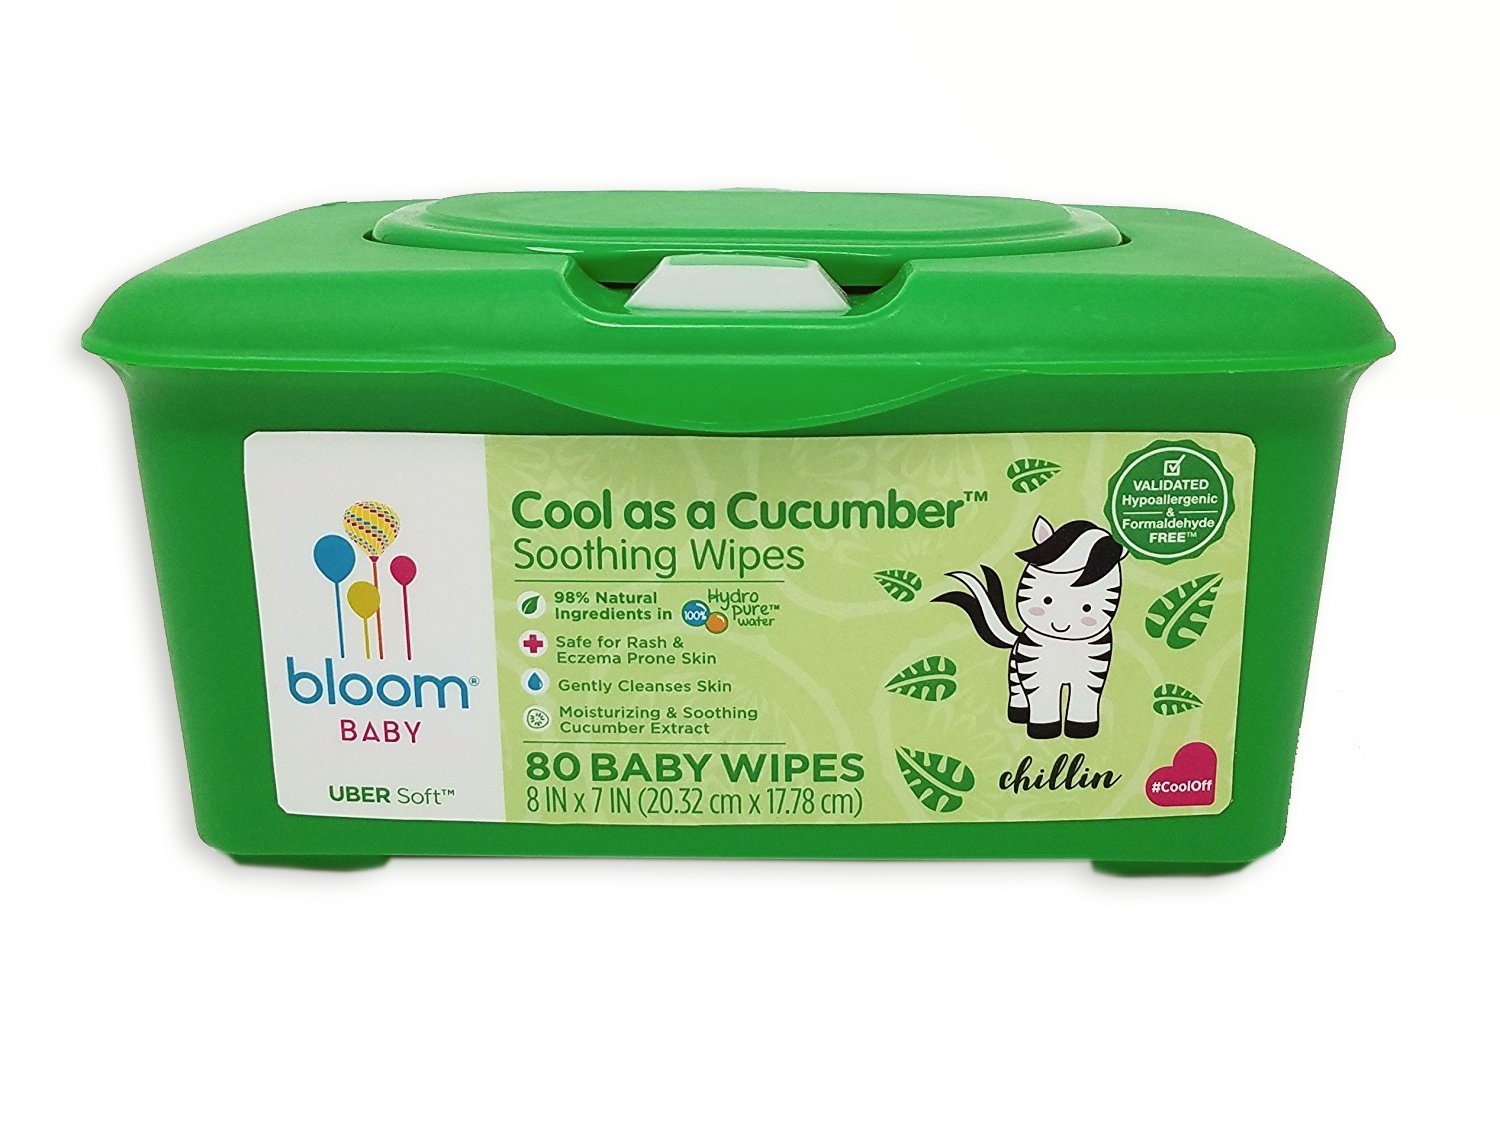 bloom BABY Cool As A Cucumber Baby Wipes Tub (80-count)